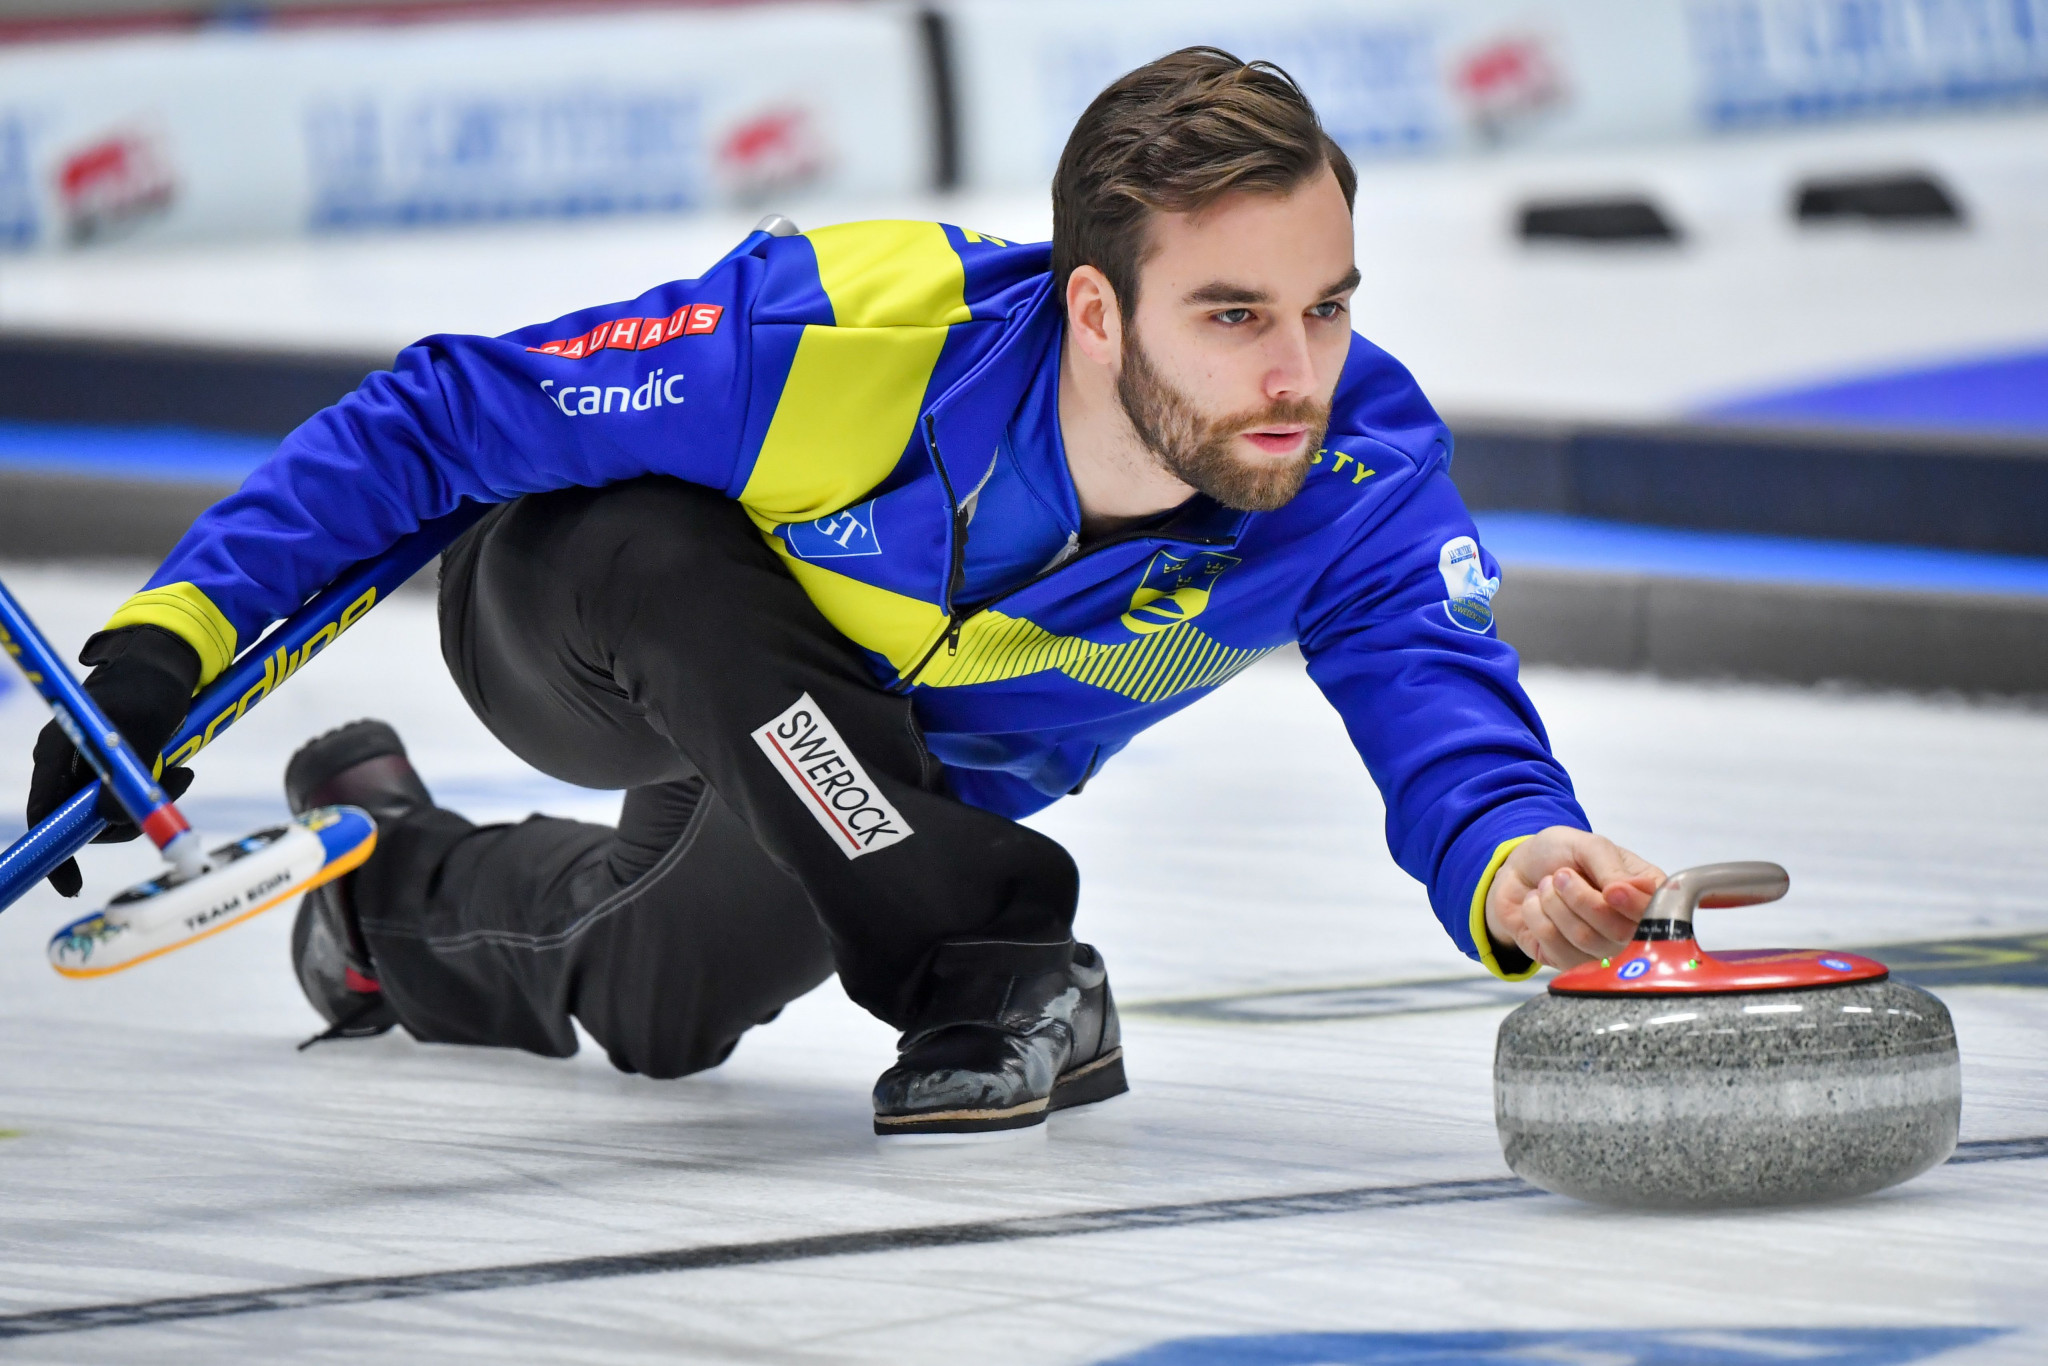 Oskar Eriksson teamed up with Anna Hasselborg to secure gold for Sweden at the 2019 World Mixed Doubles Curling Championship ©Getty Images